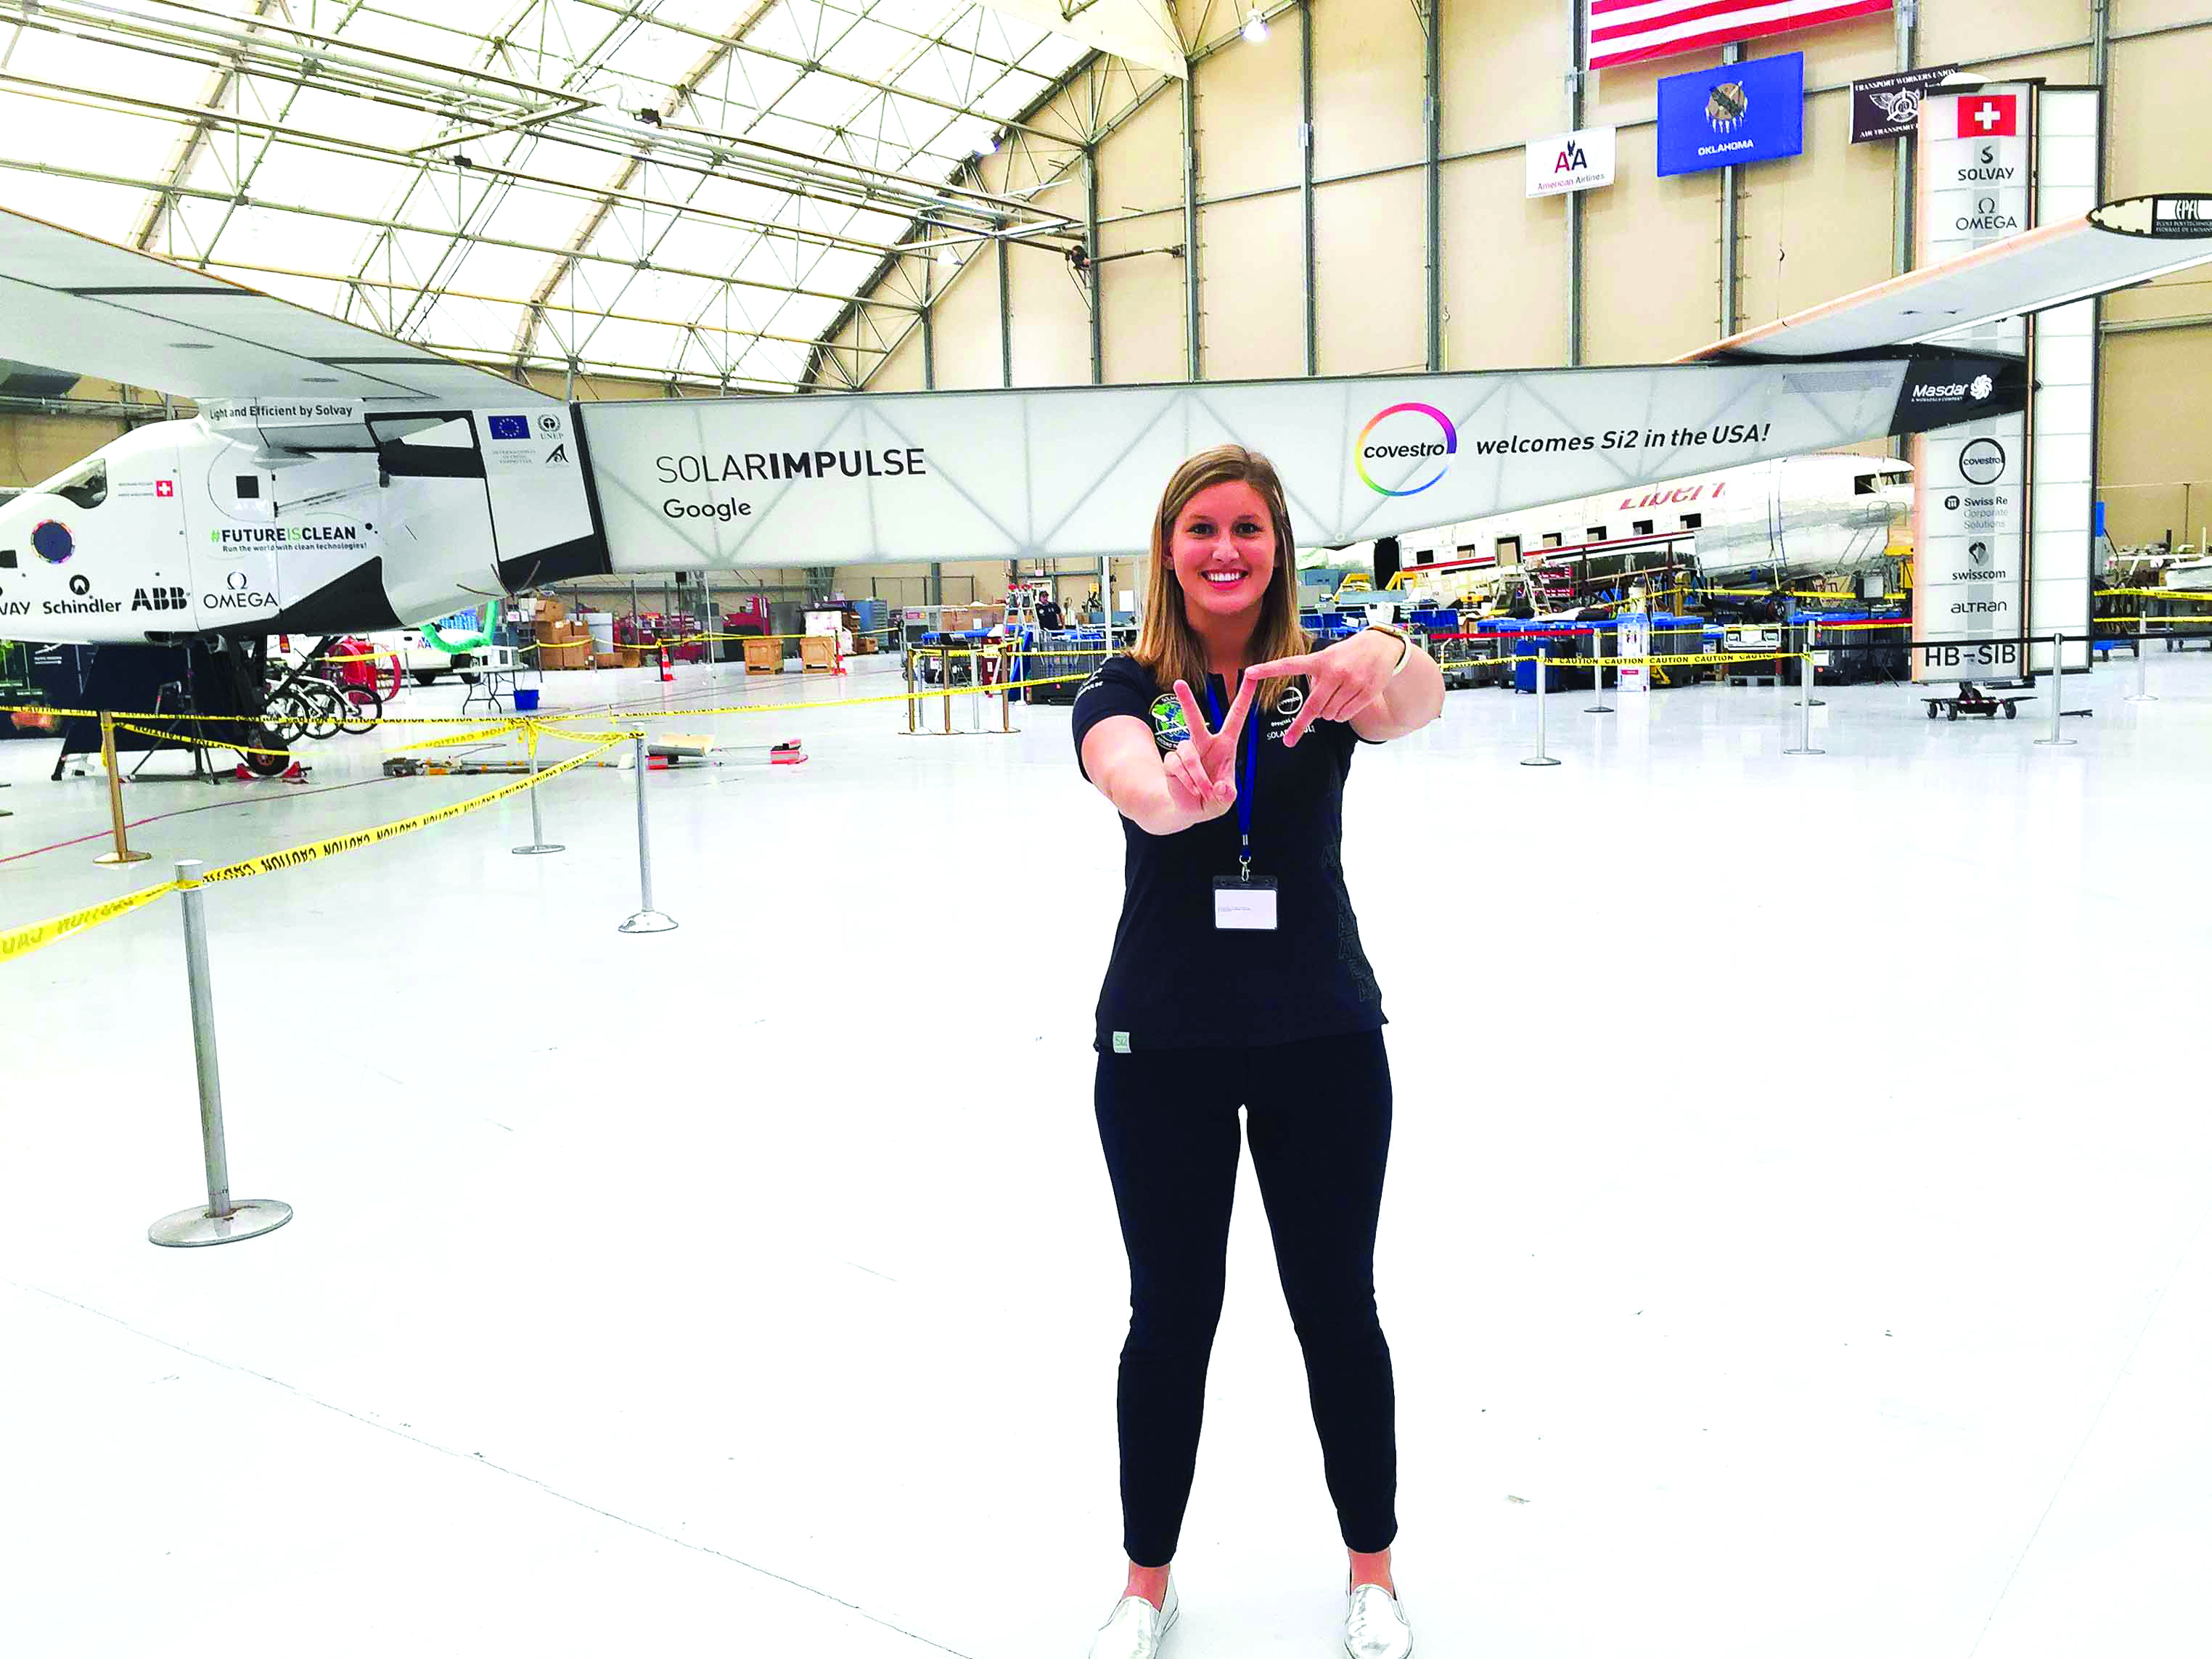 Paige Kassalen and SolarImpulse